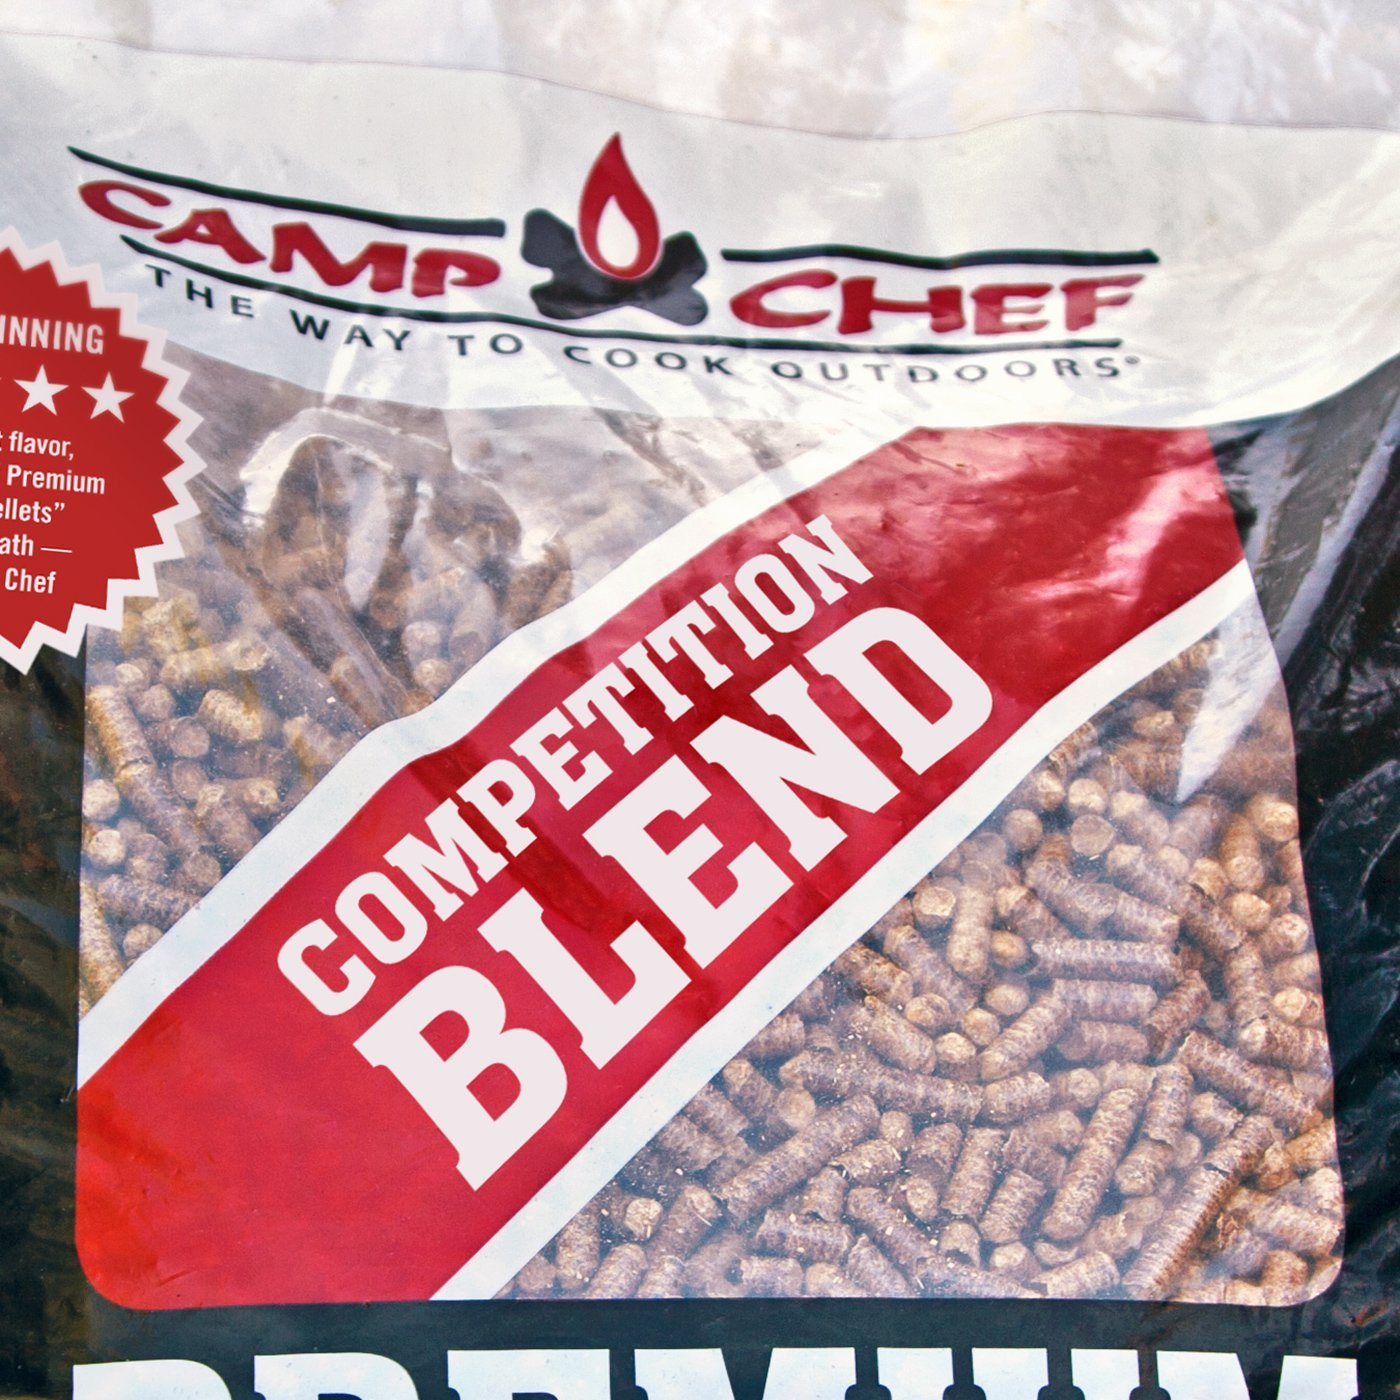 Camp Chef Smoker Grill Competition Blend Hardwood Pellets, 20 Pounds (4 Pack) by Camp Chef (Image #5)